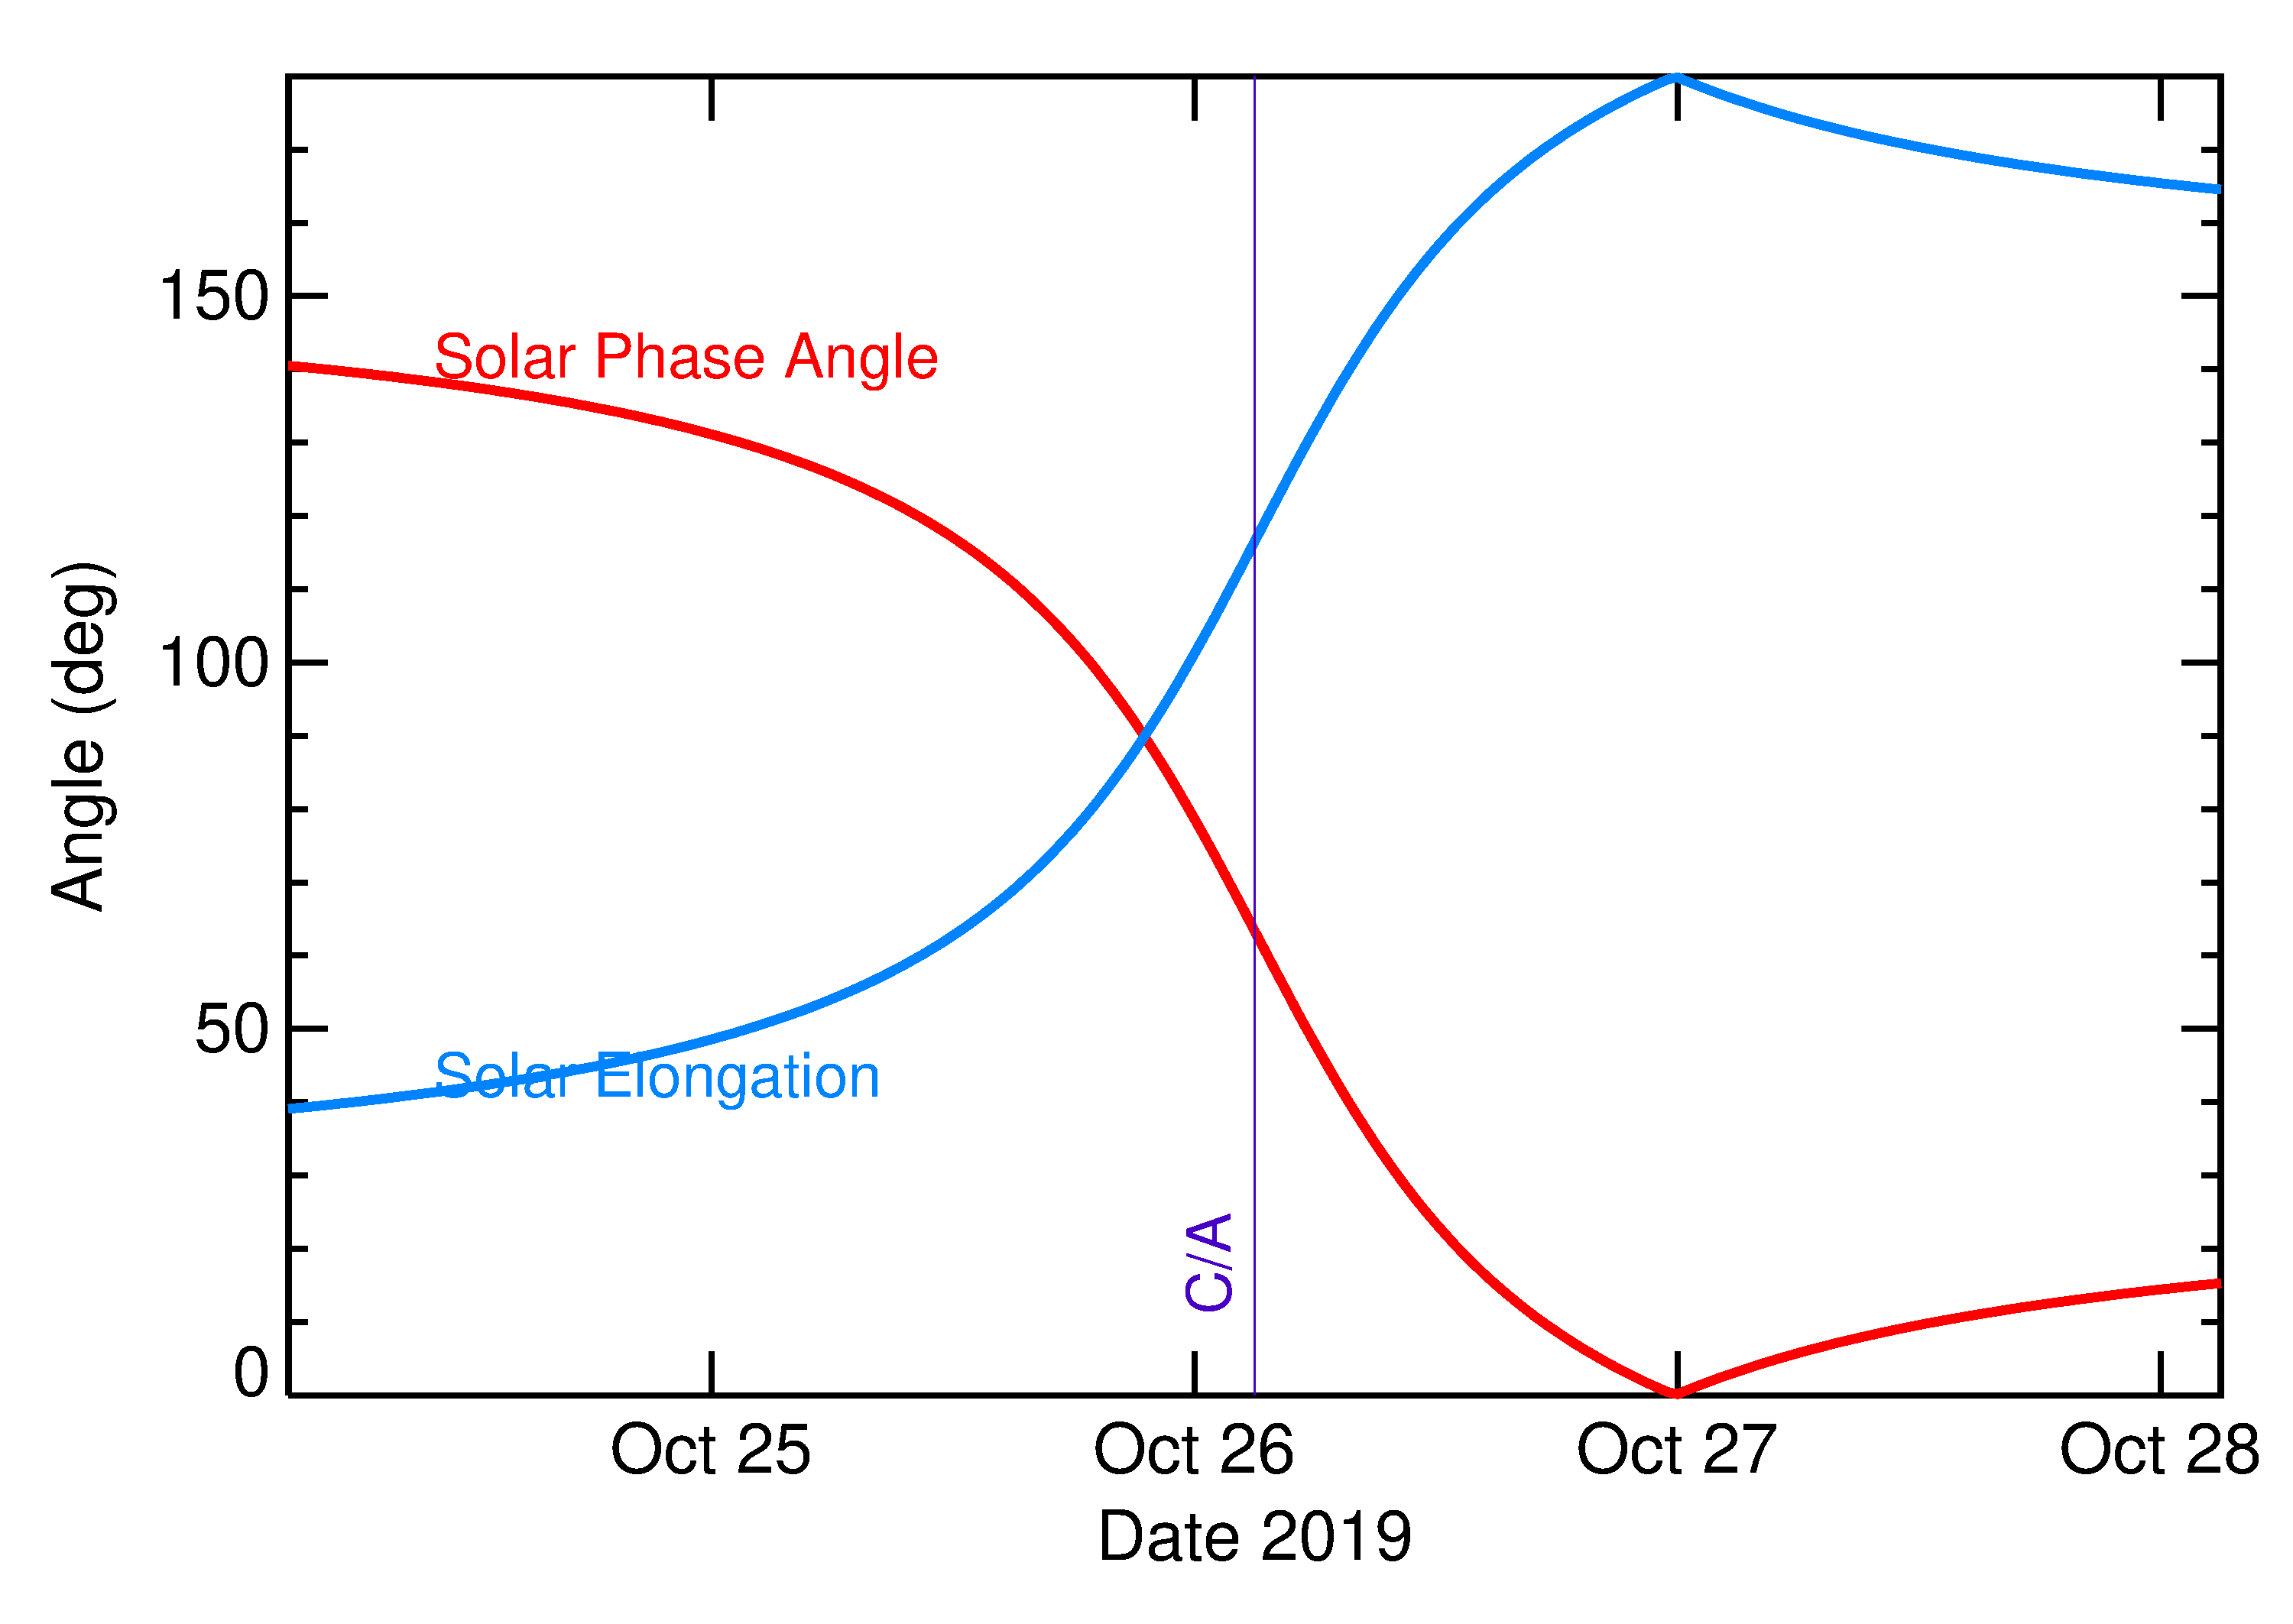 Solar Elongation and Solar Phase Angle of 2019 UX12 in the days around closest approach